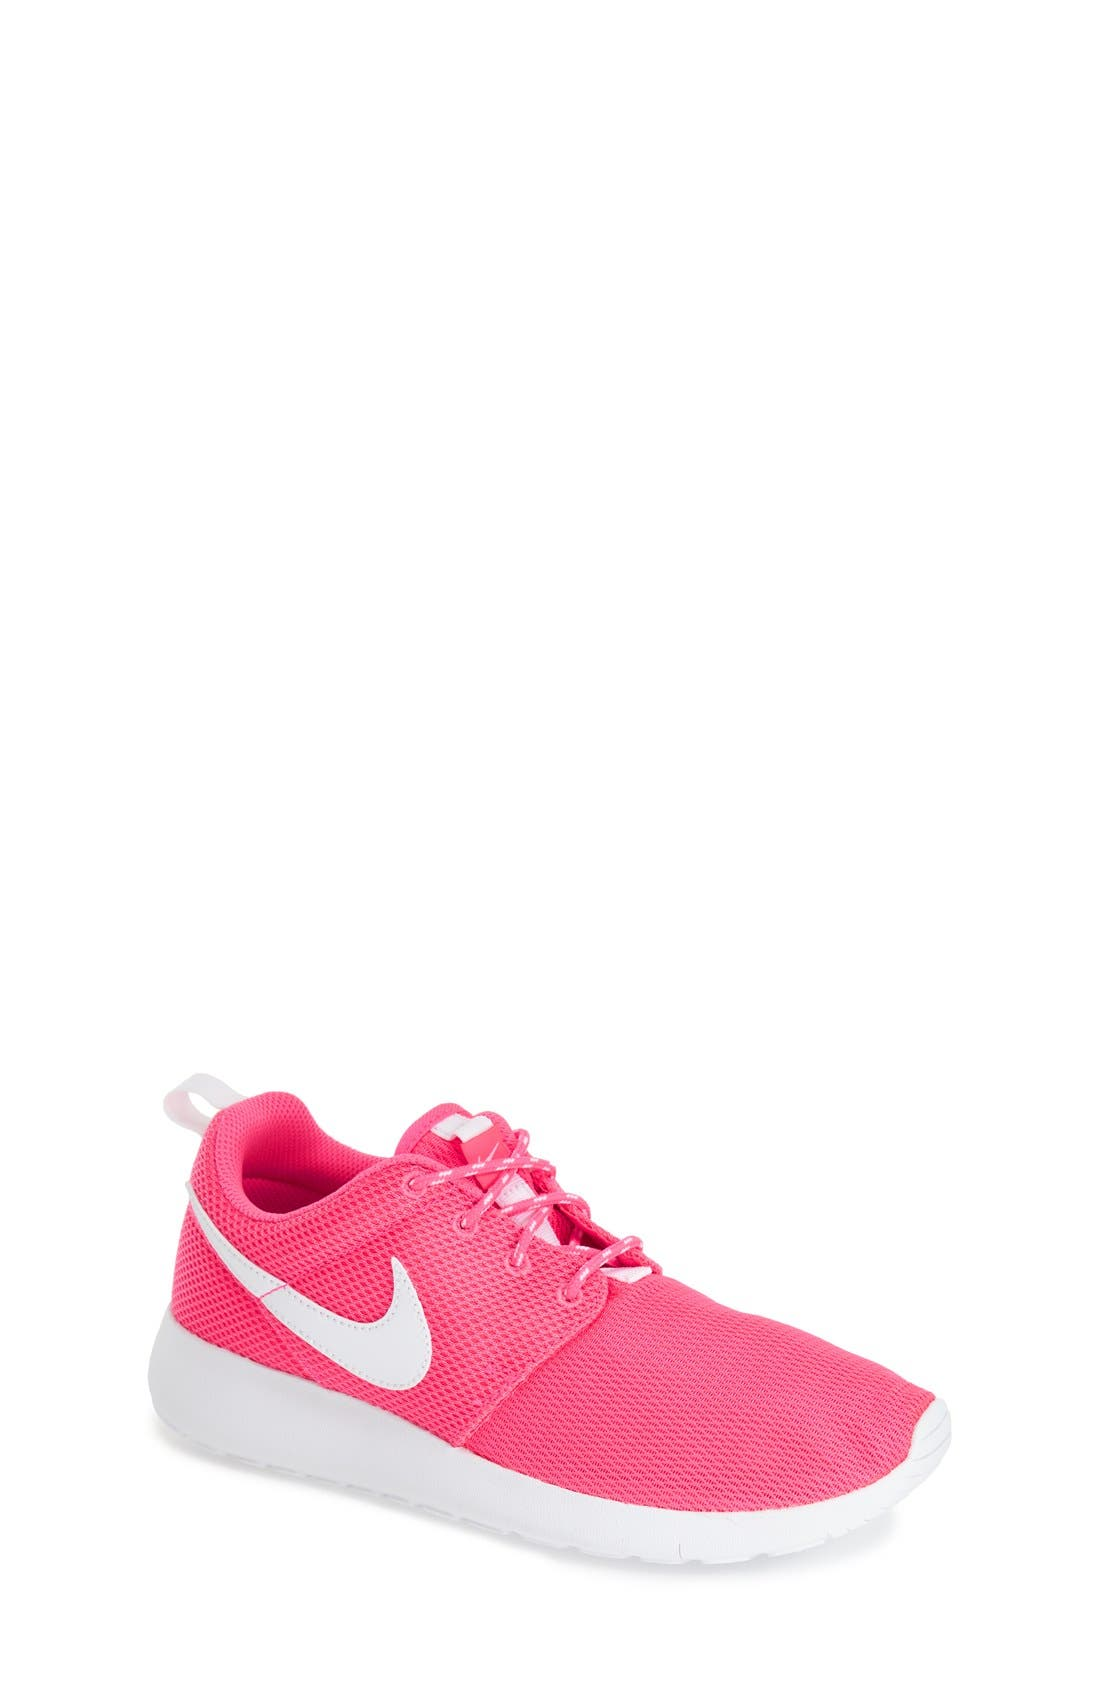 NIKE Roshe Run Athletic Shoe